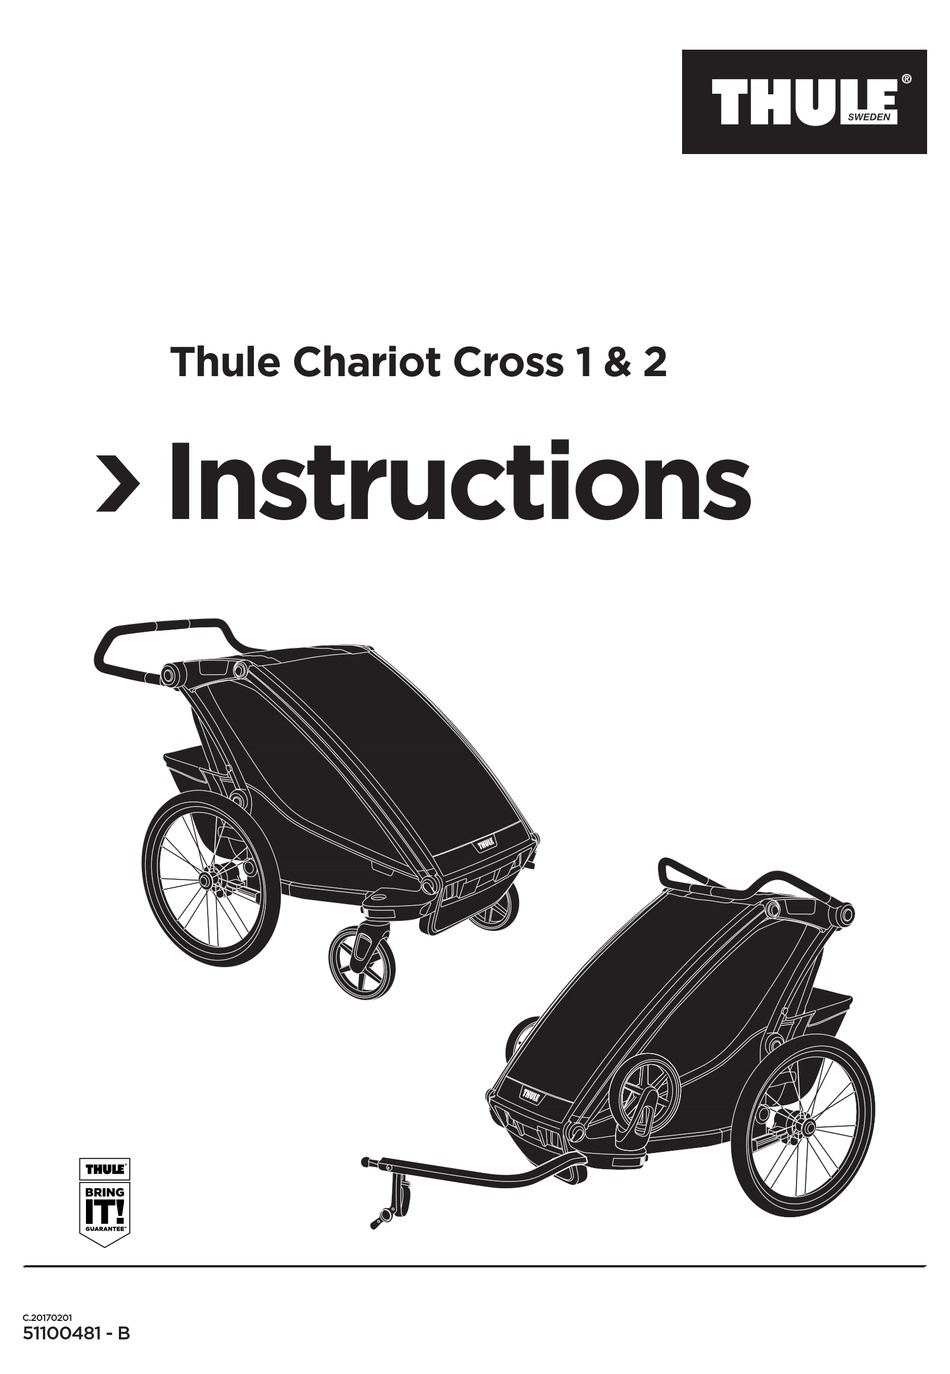 THULE CHARIOT CROSS 1 INSTRUCTIONS MANUAL Pdf Download